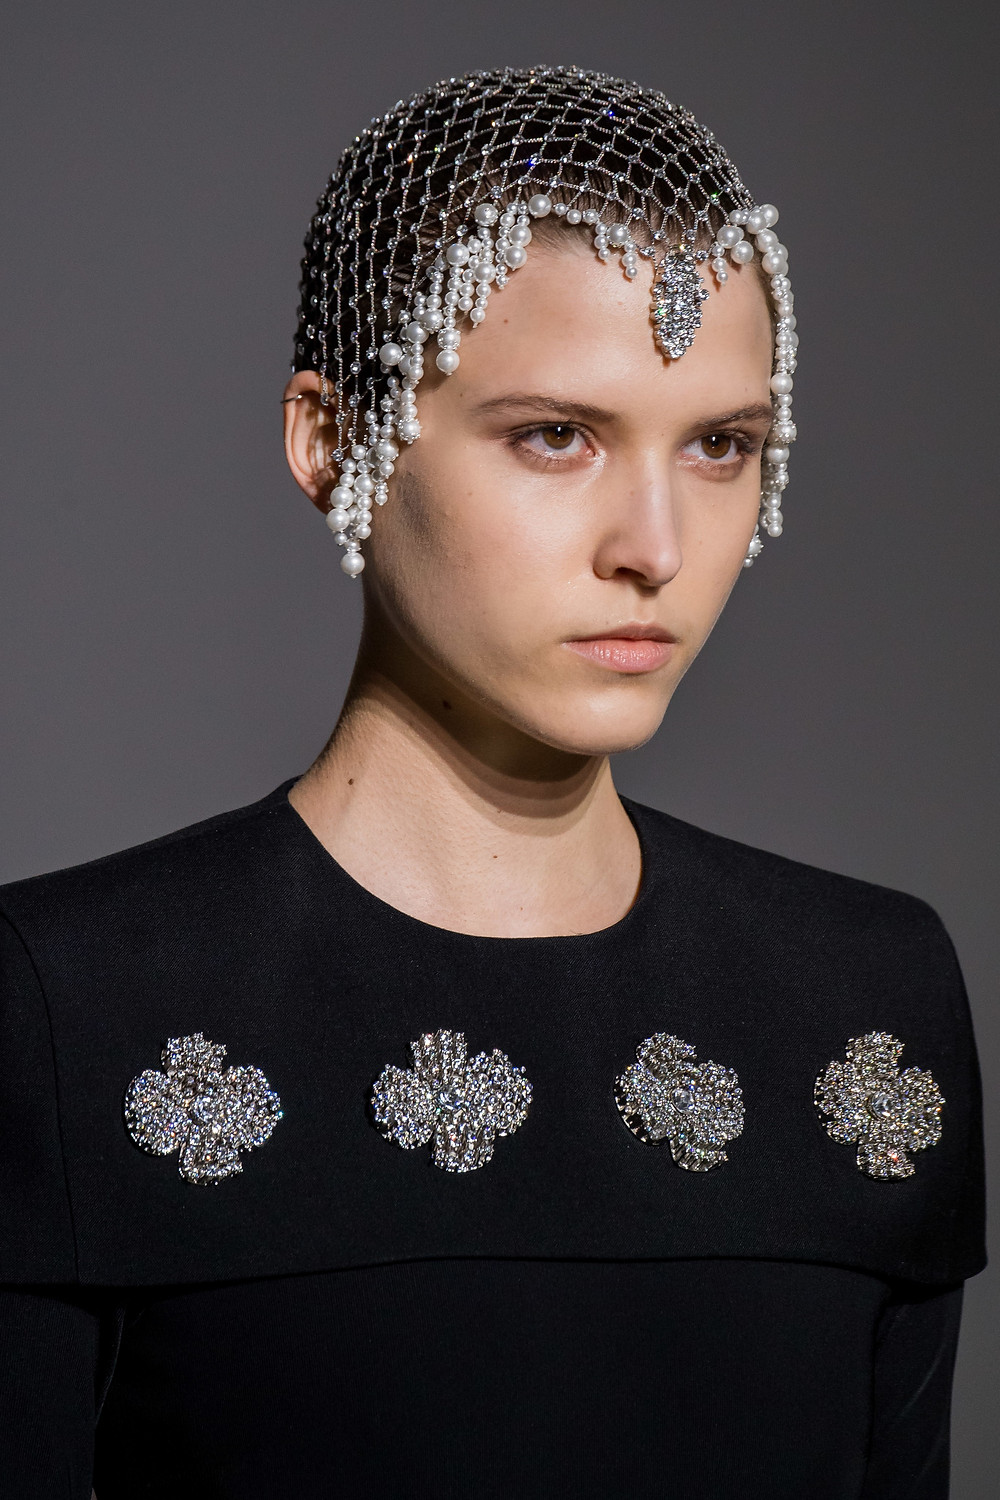 Givenchy Spring 2019 Couture Collection head piece